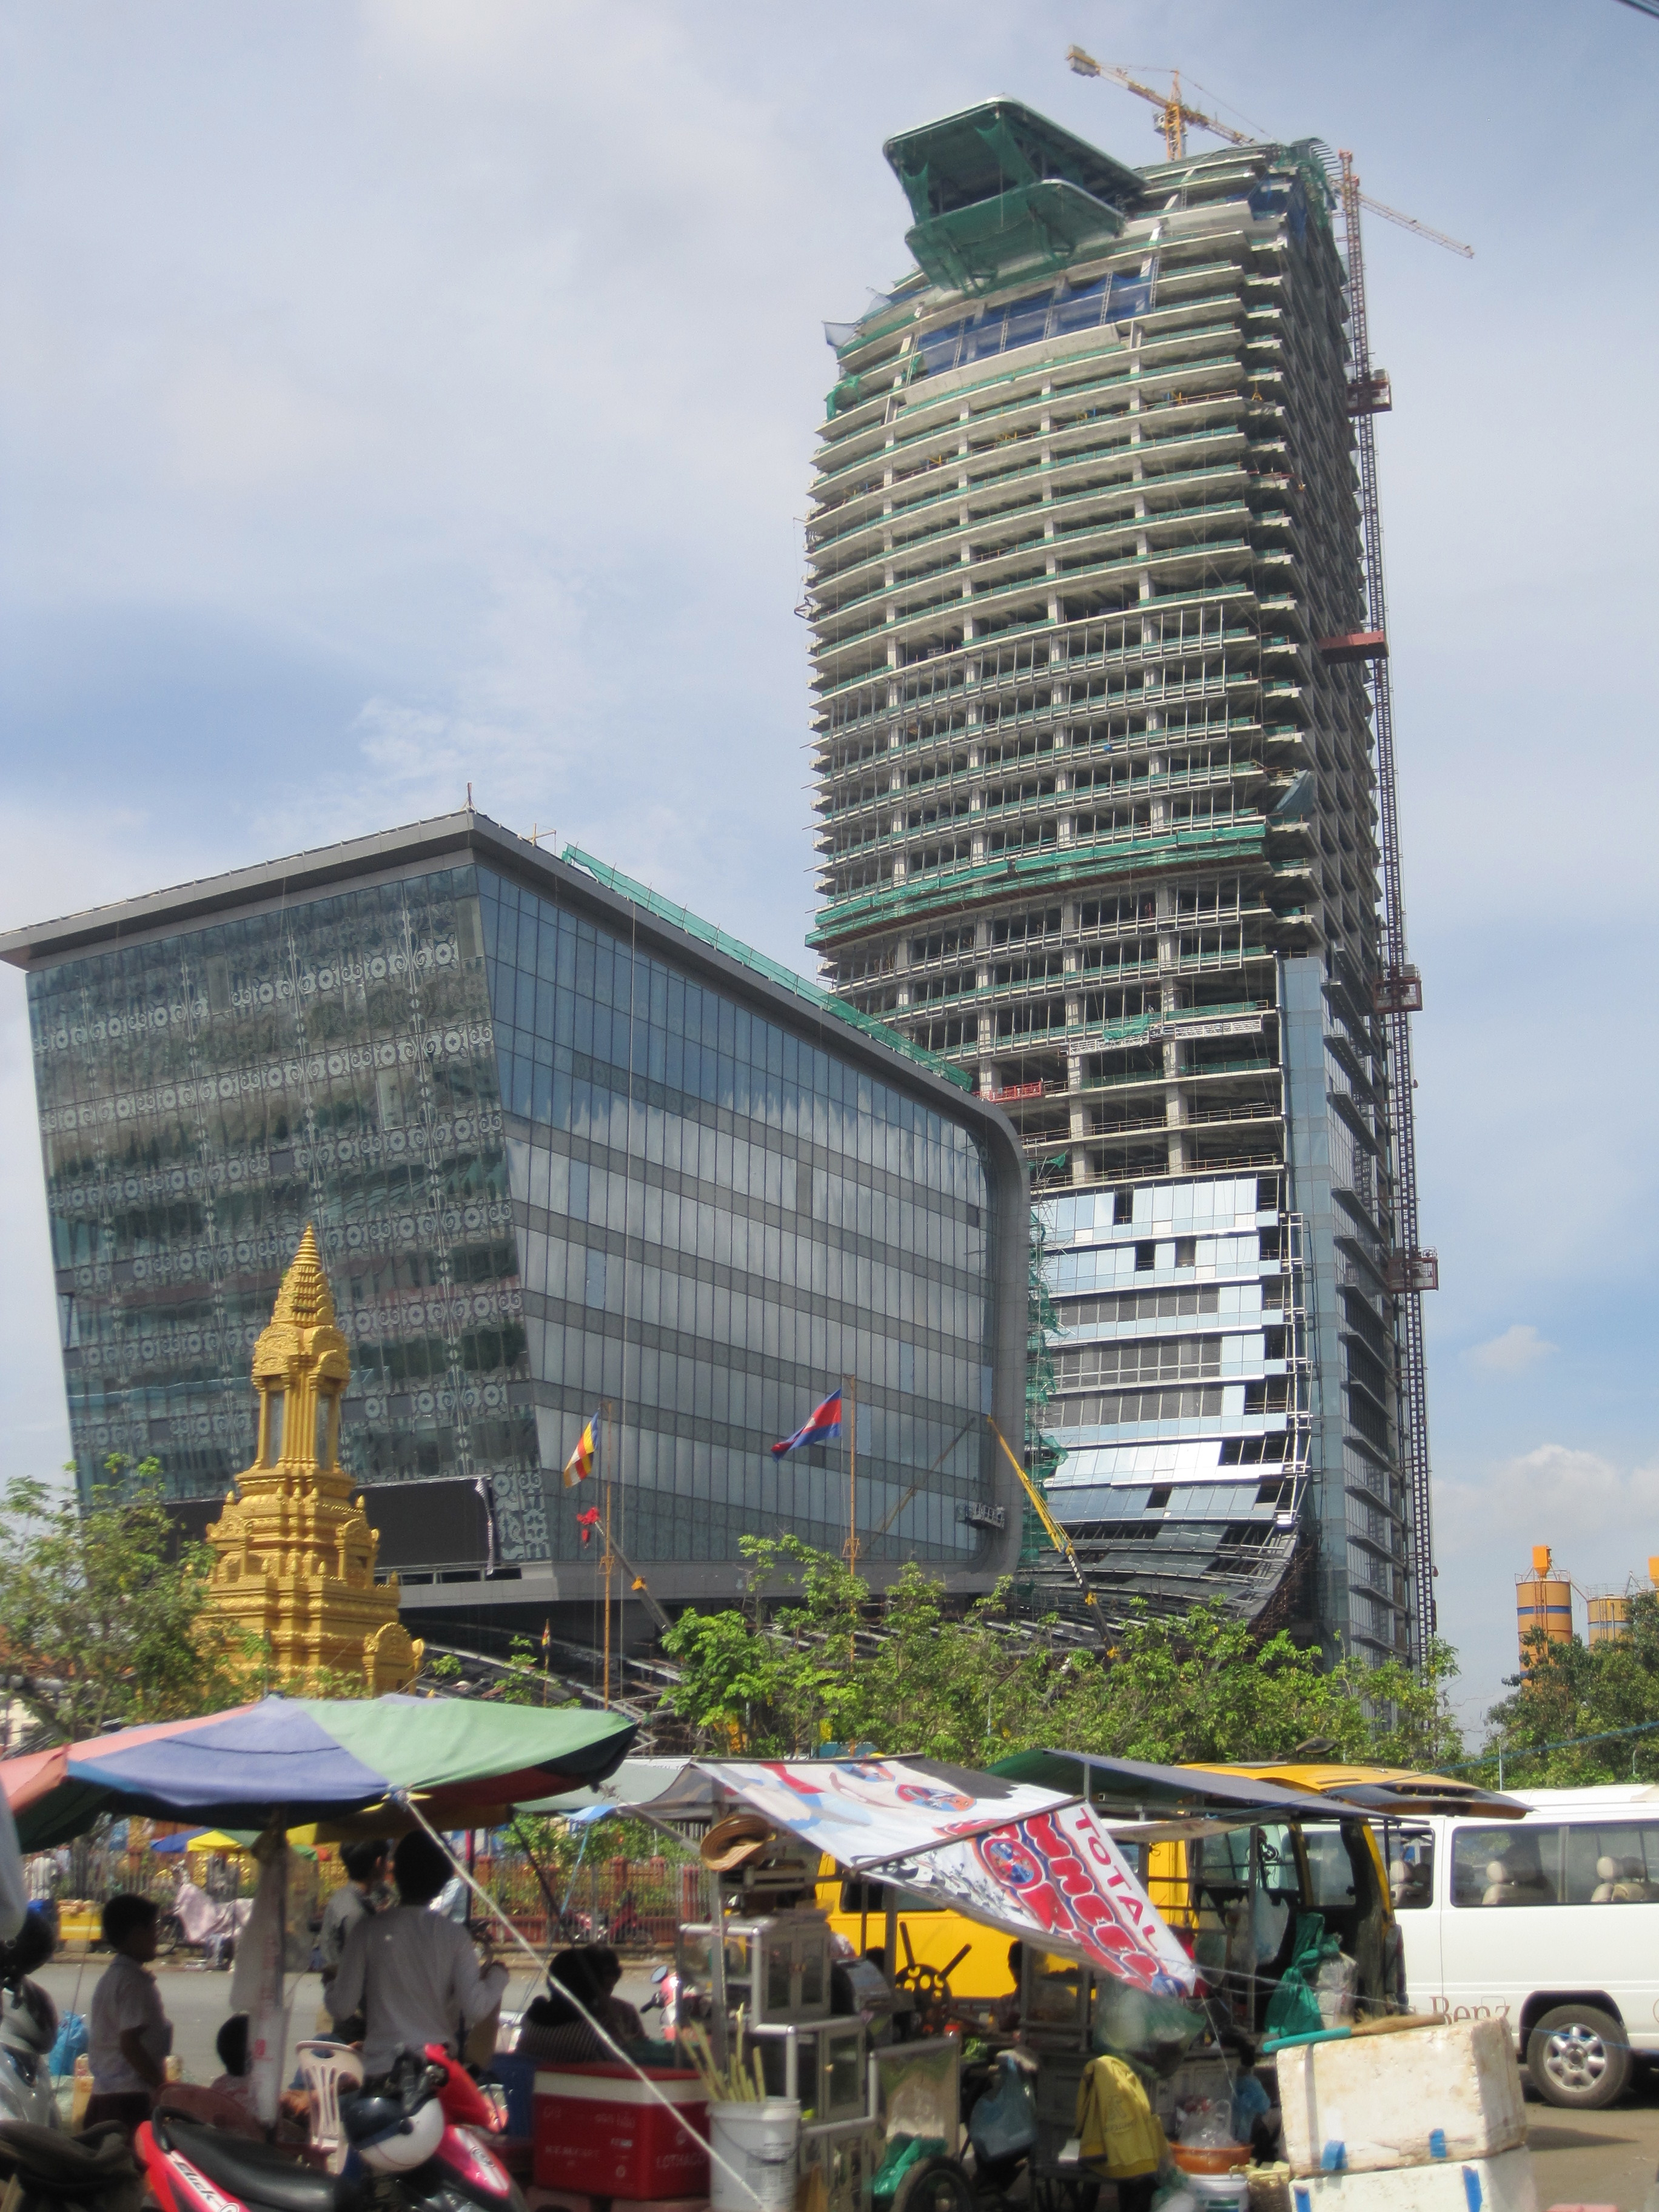 The Vattanac Capital Towers Archetecture Was Inspired By The Naga A Mytical Serpent